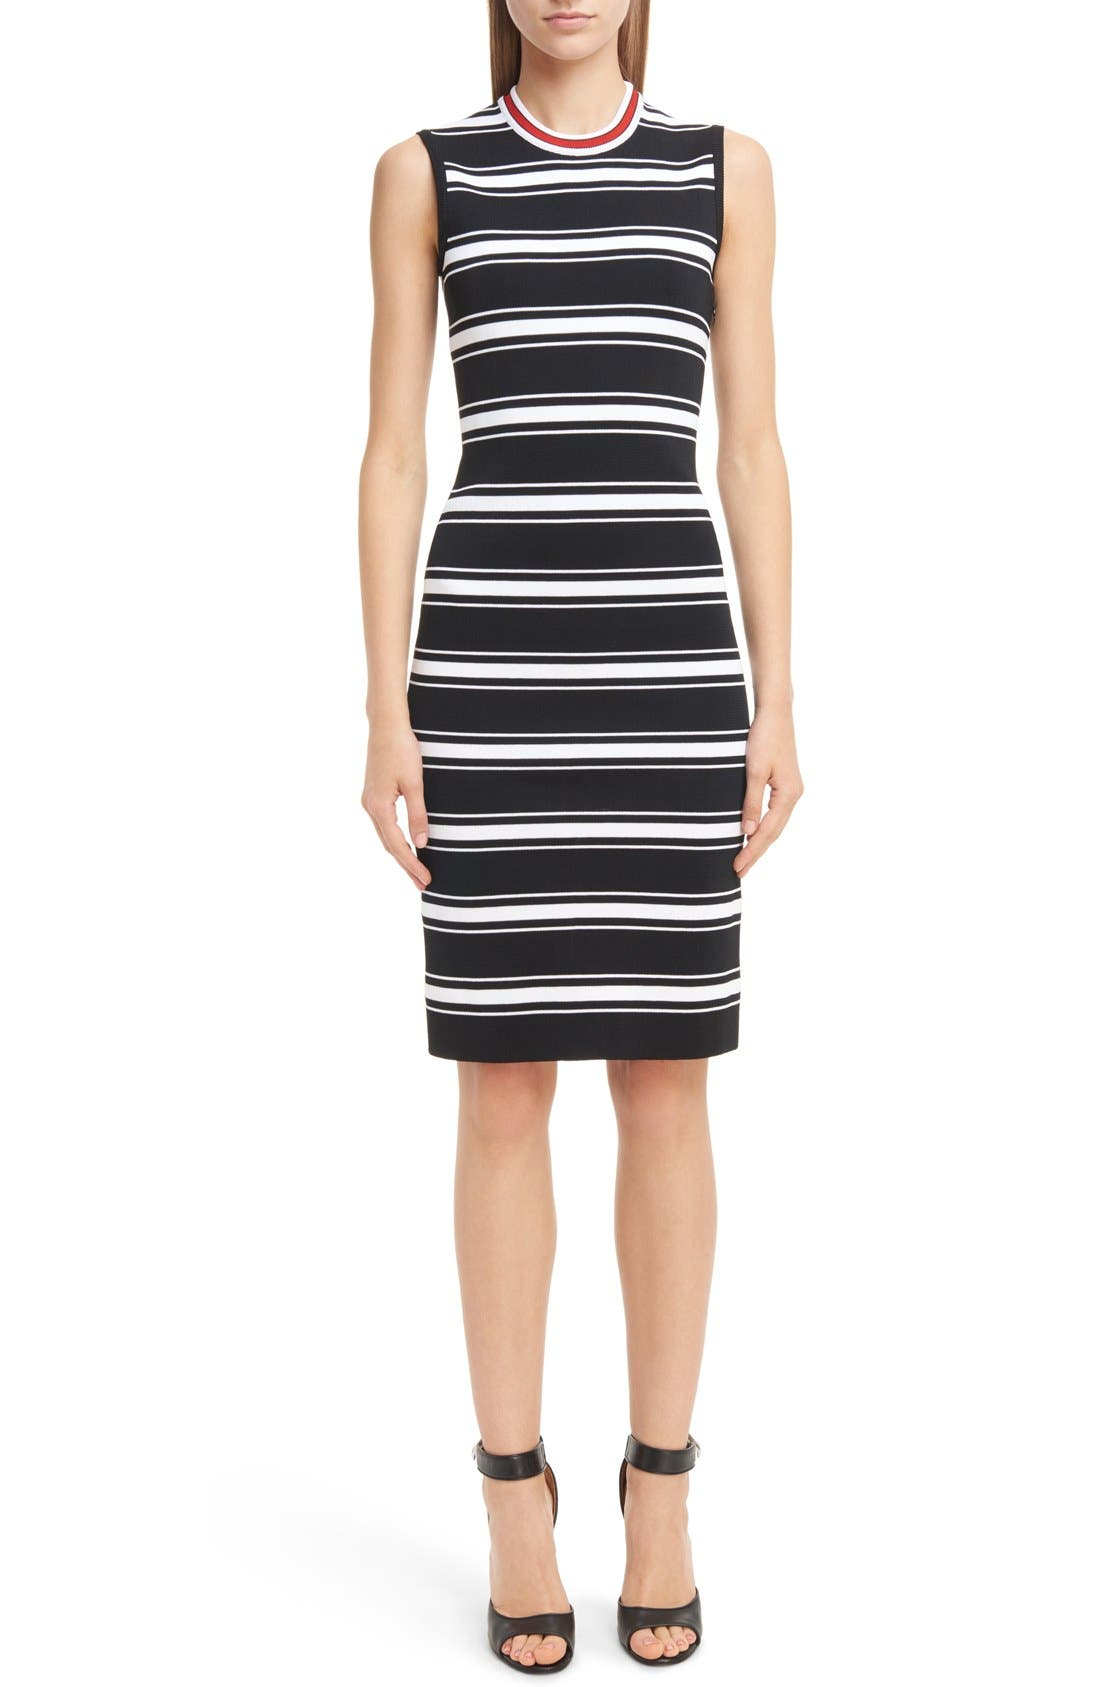 GIVENCHY Stripe Knit Dress